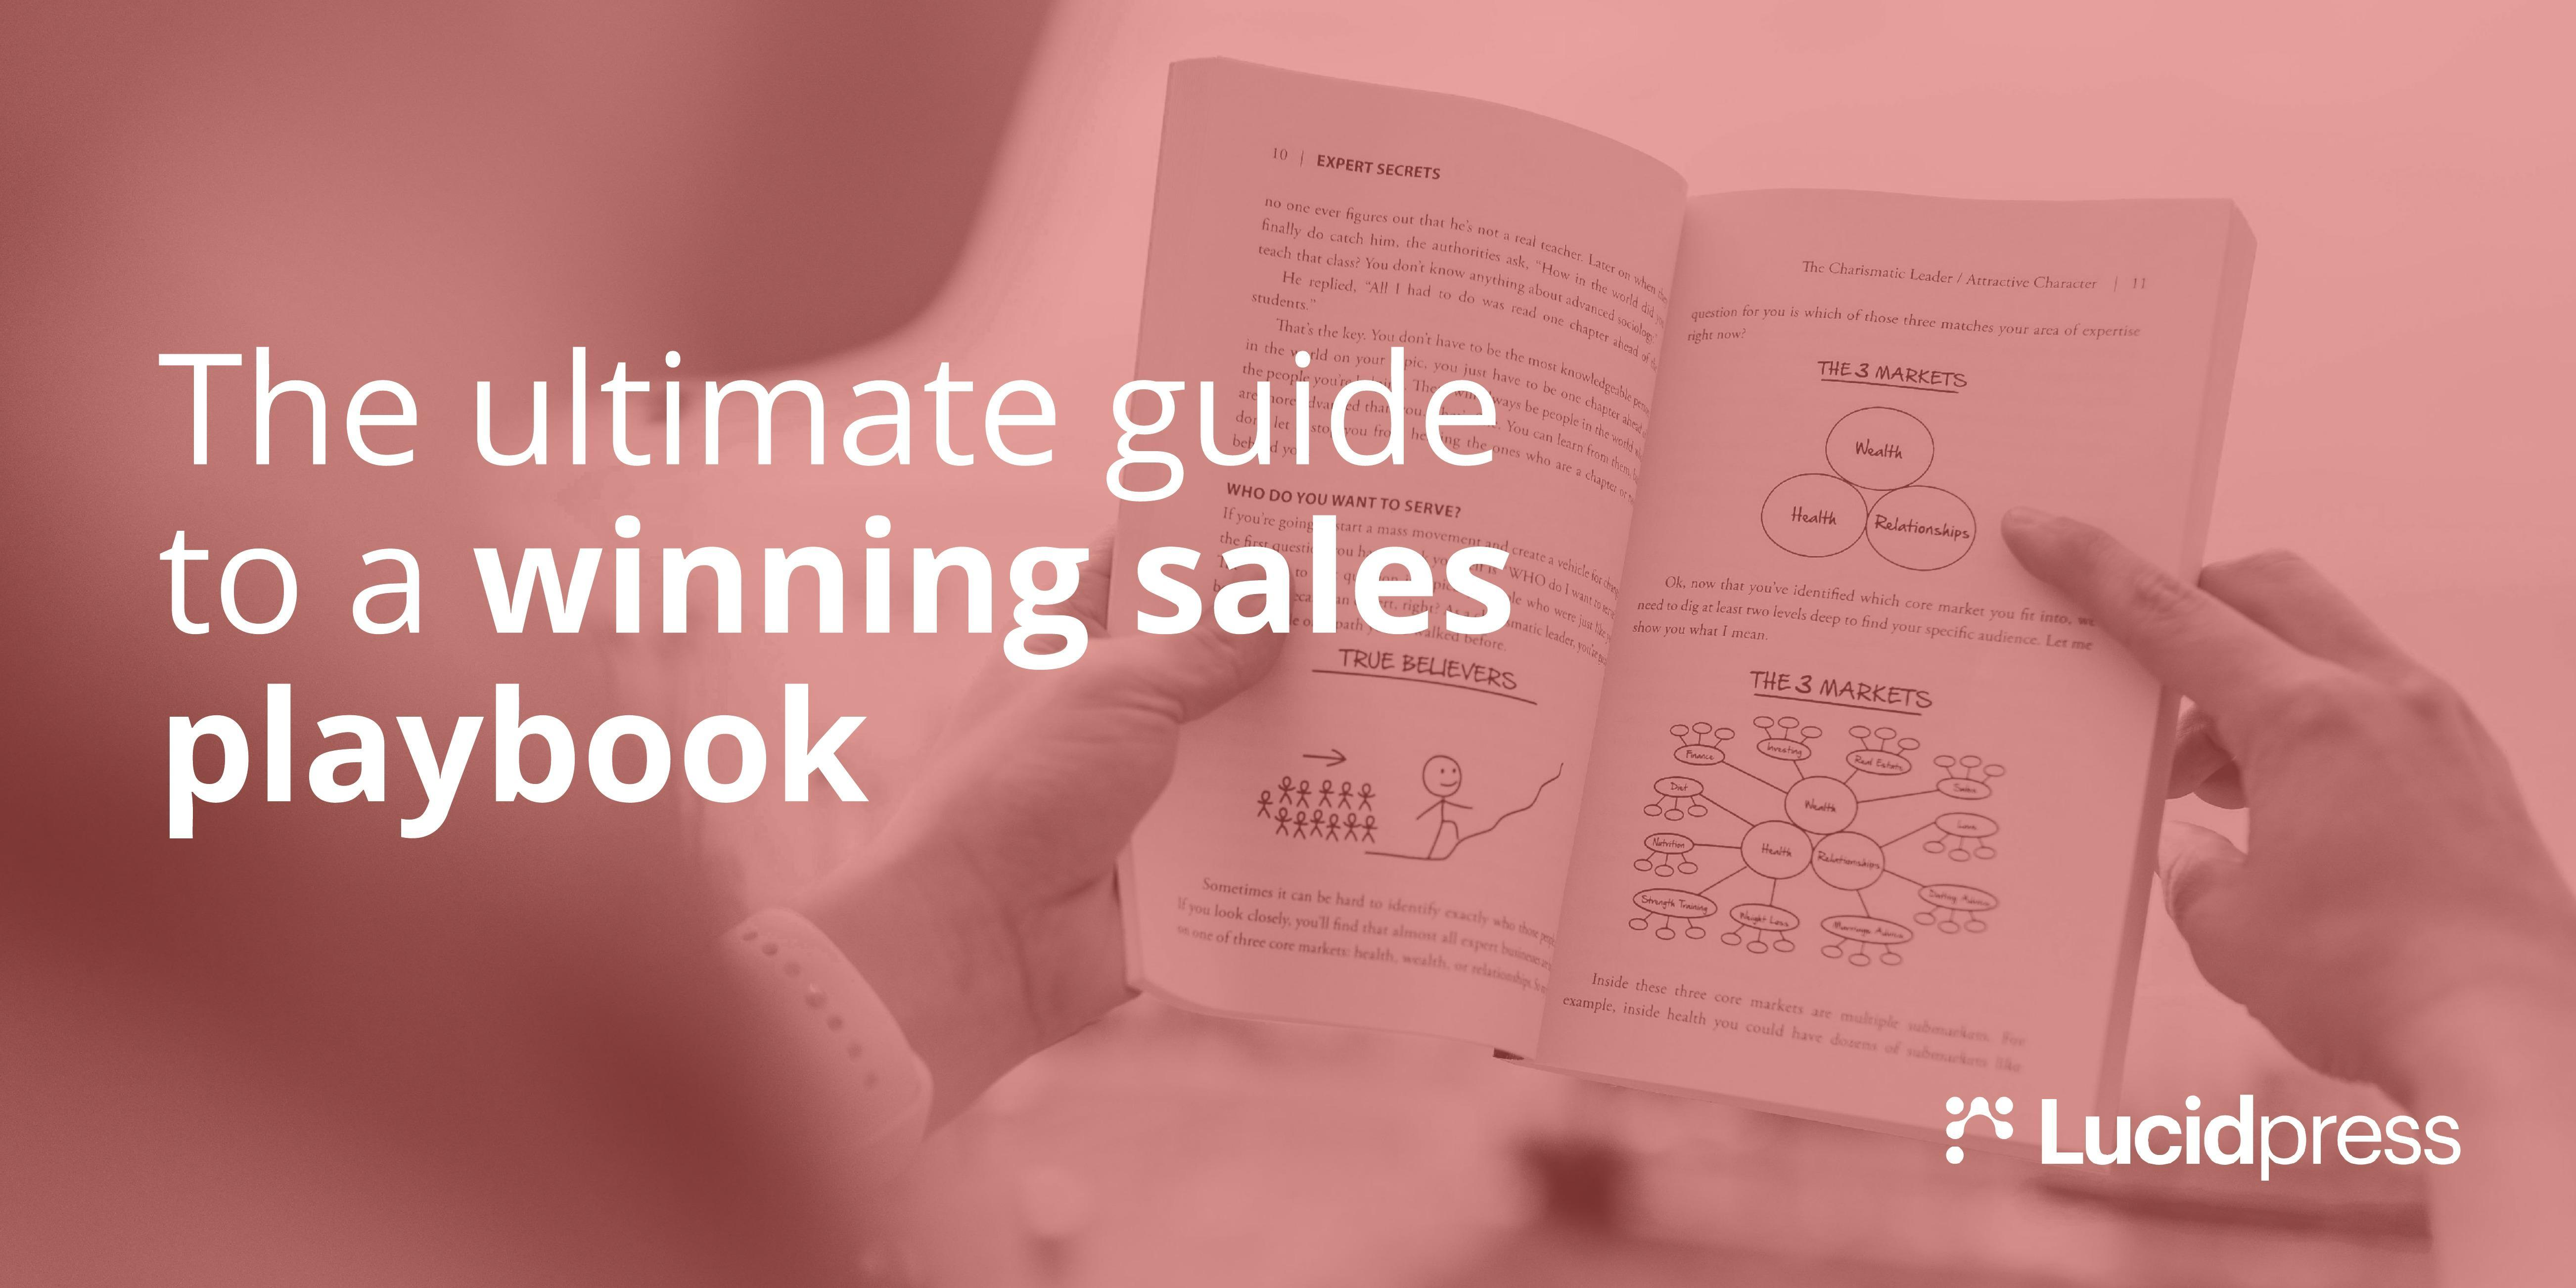 The Ultimate Guide to a Winning Sales Playbook | Lucidpress